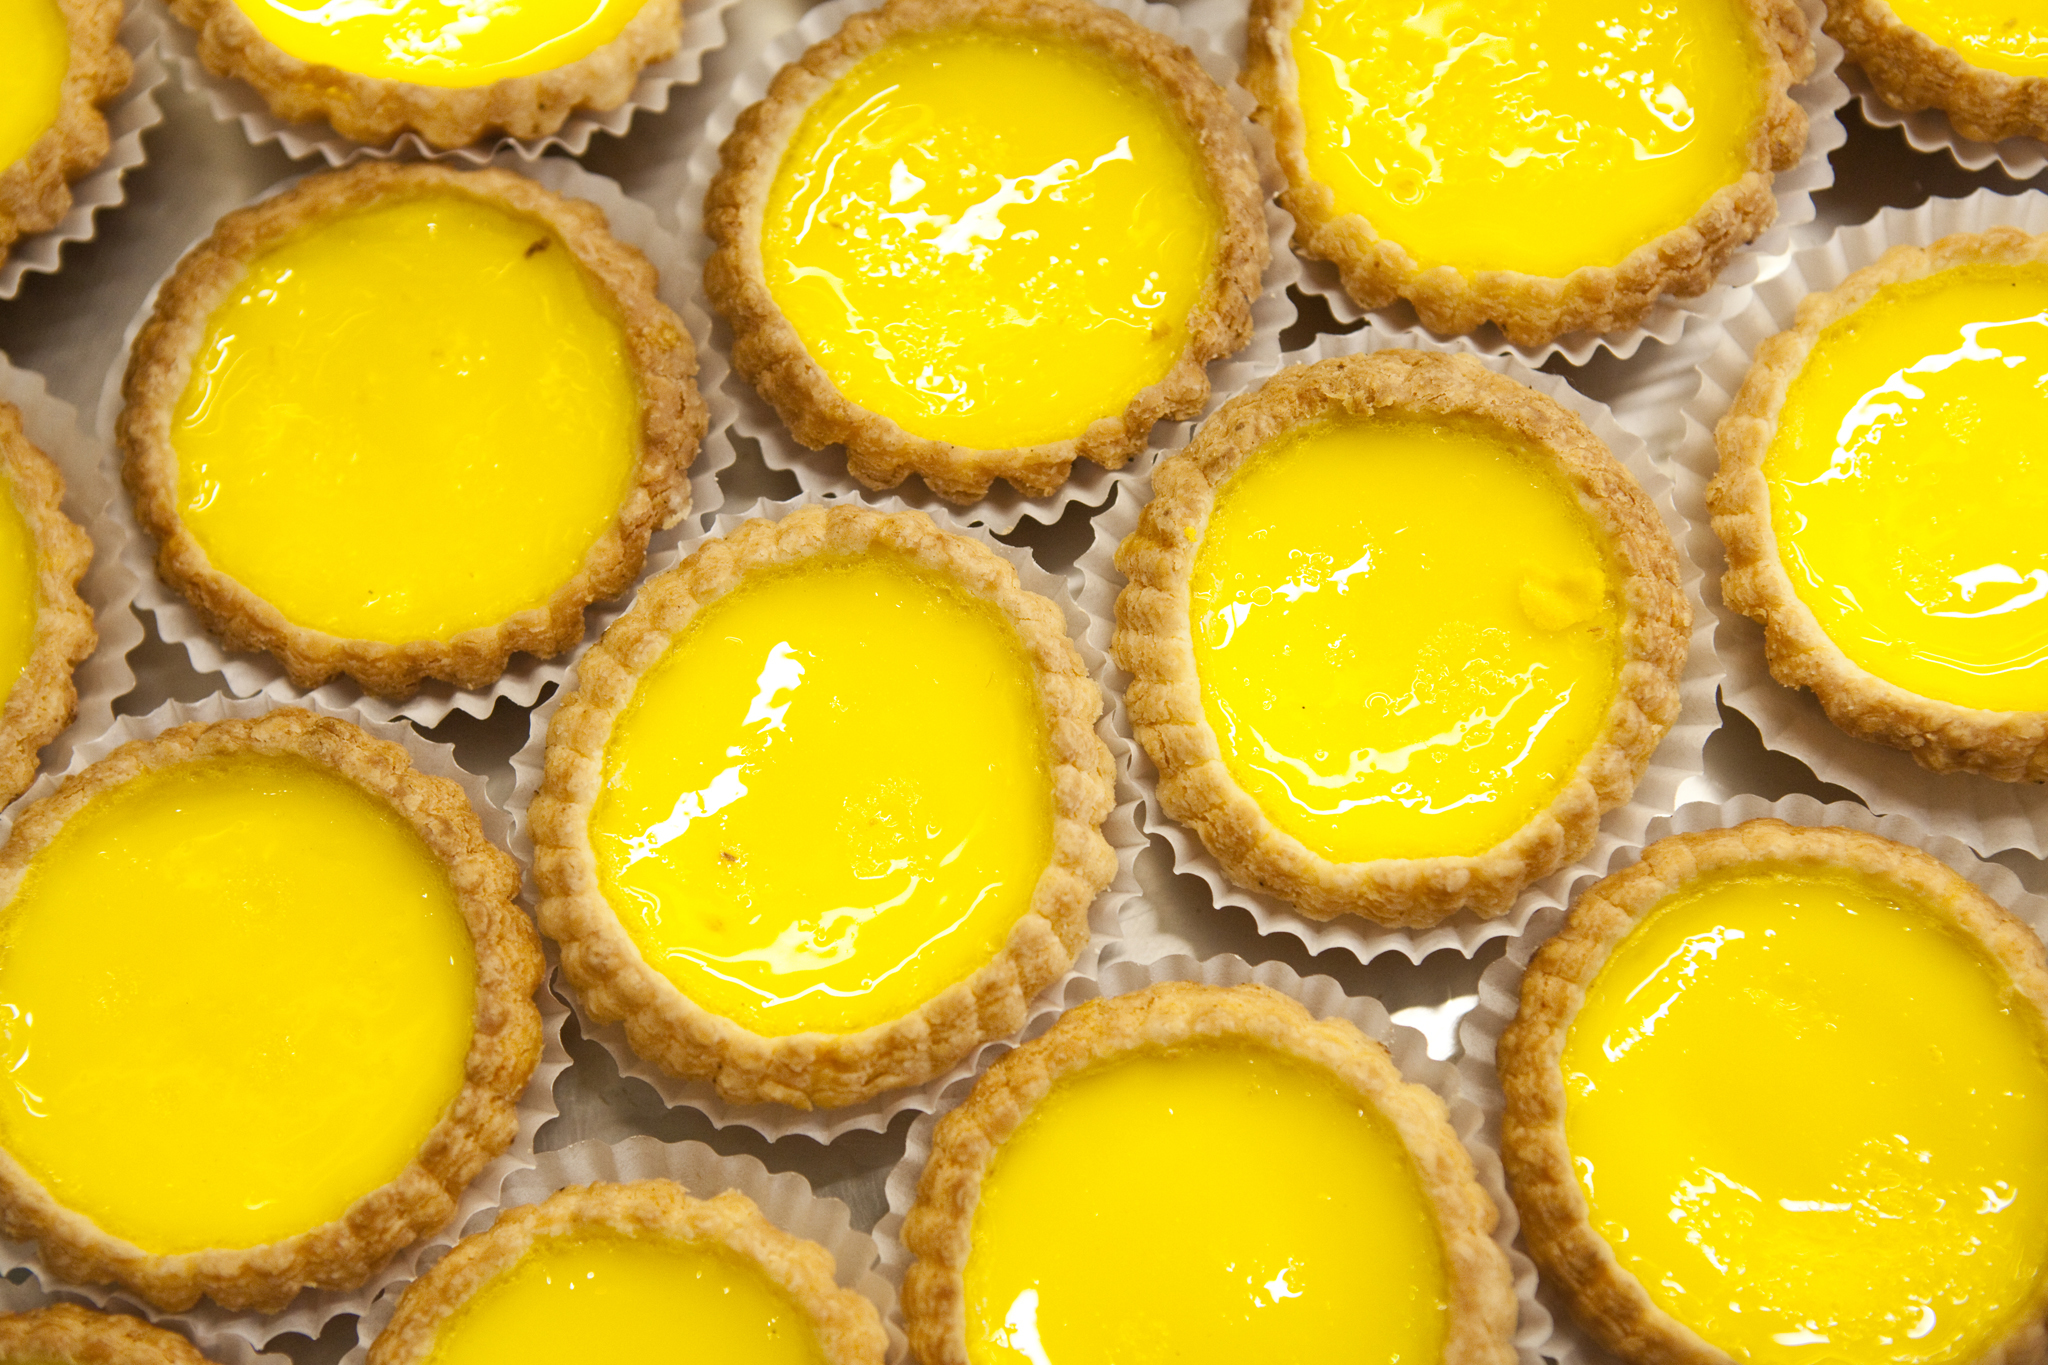 Egg tart: Dragon Bay Bakery